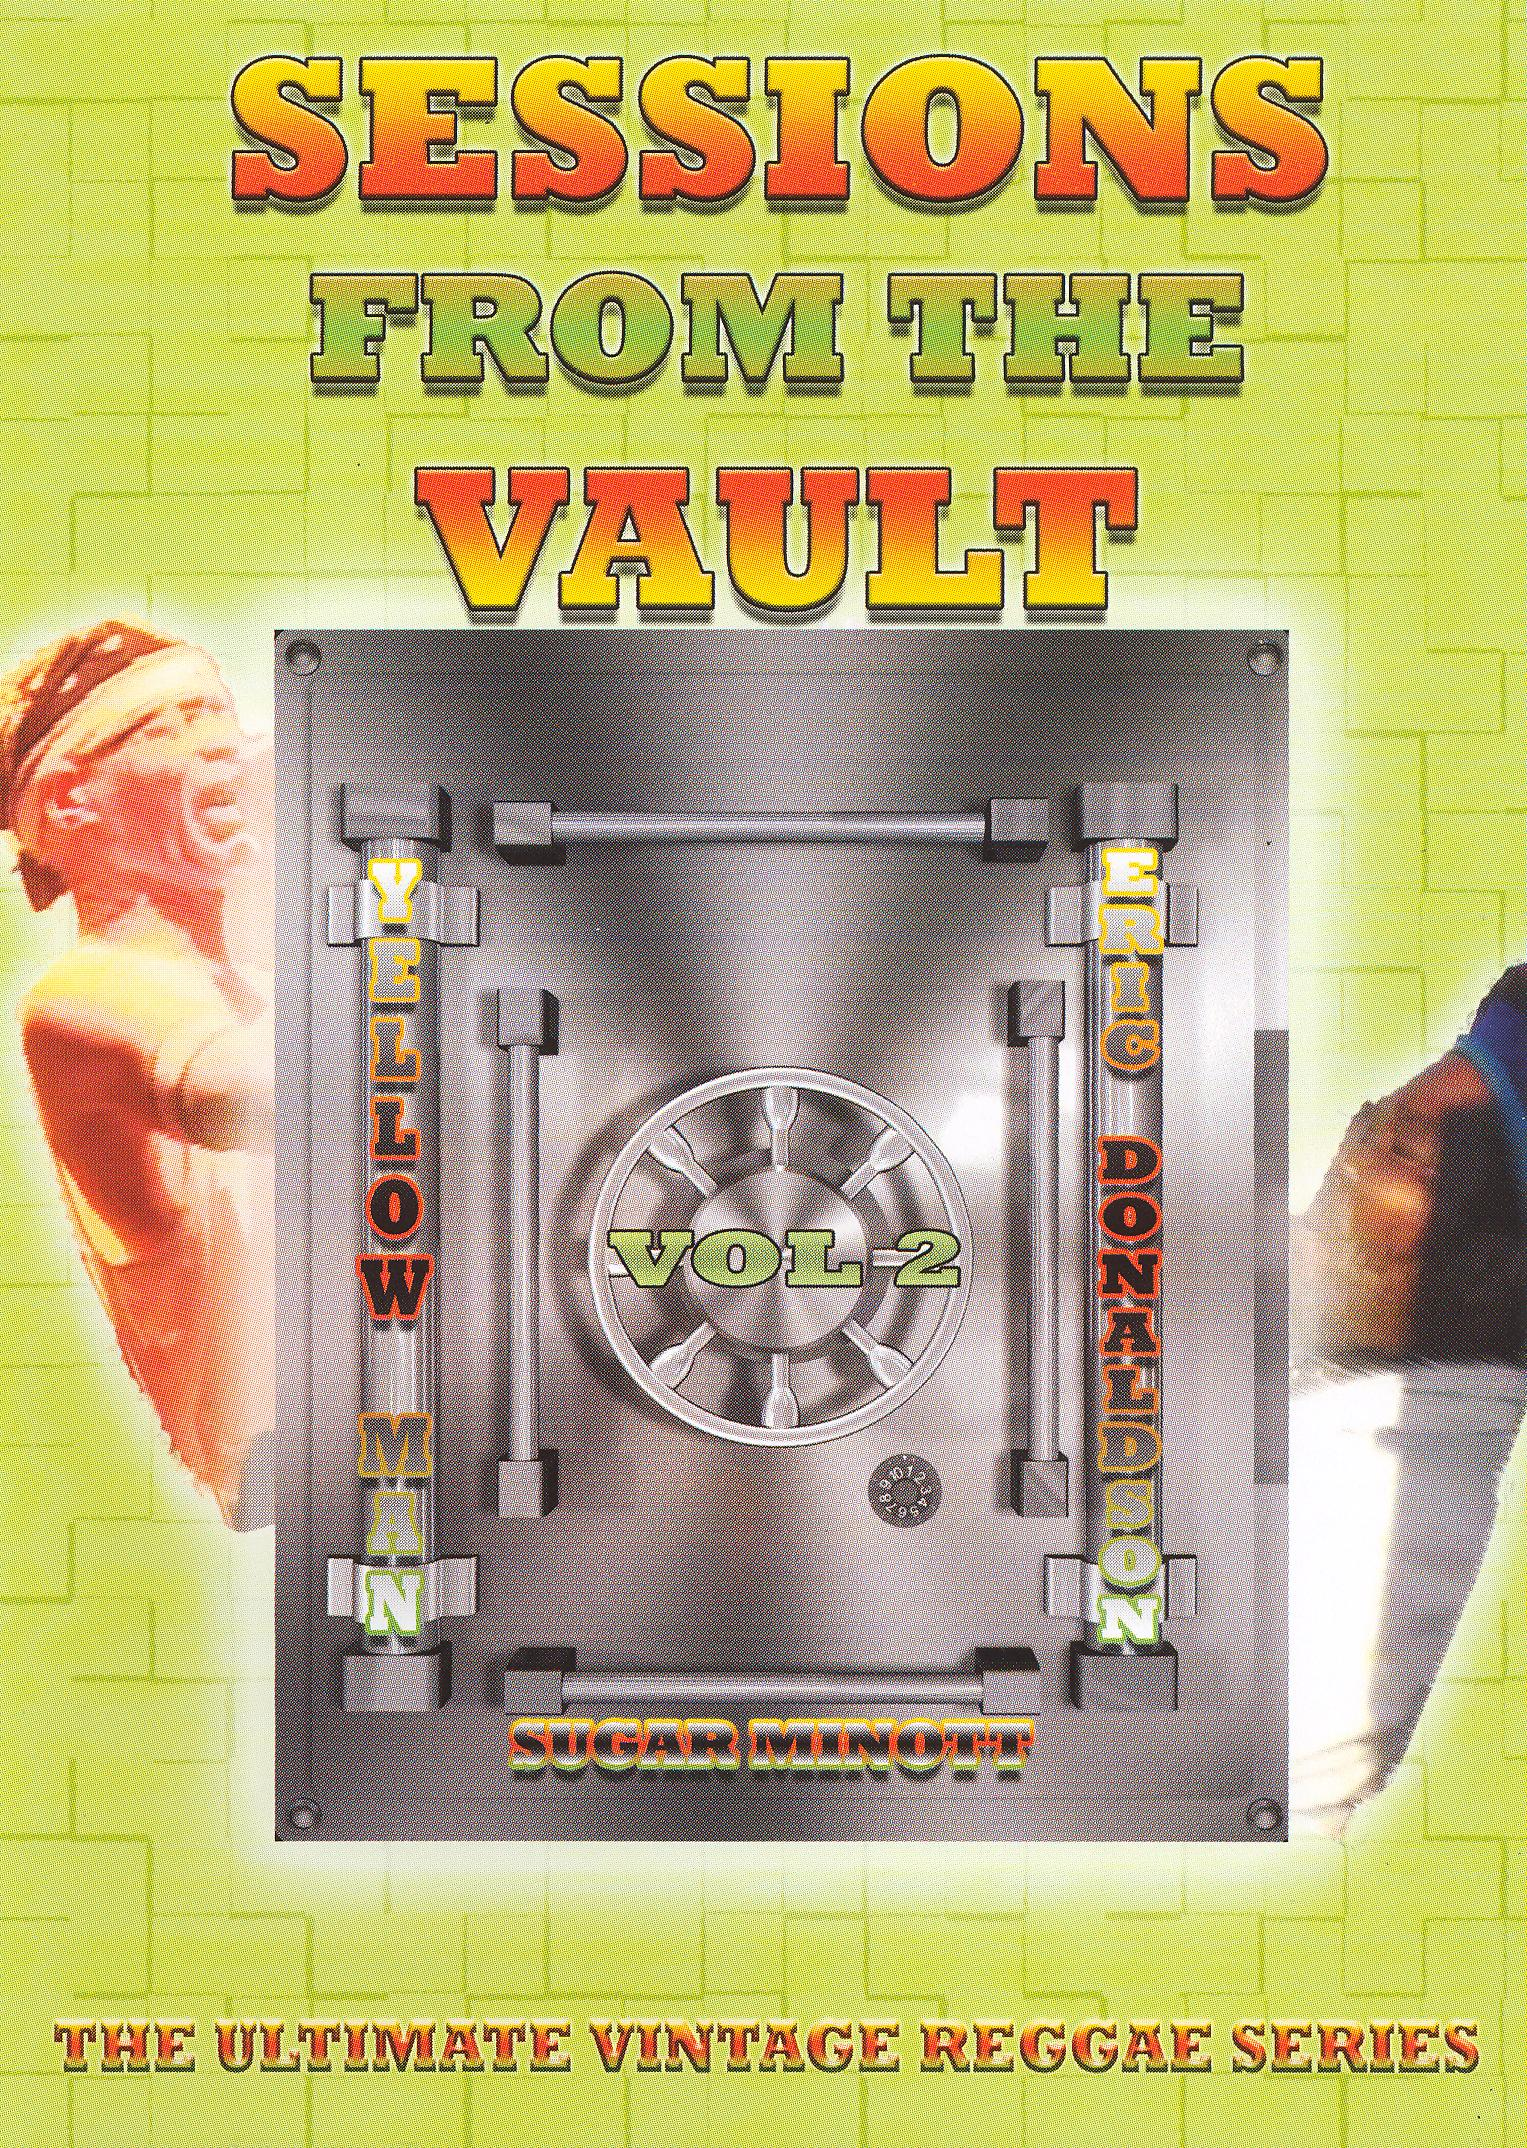 Sessions from the Vault, Vol. 2